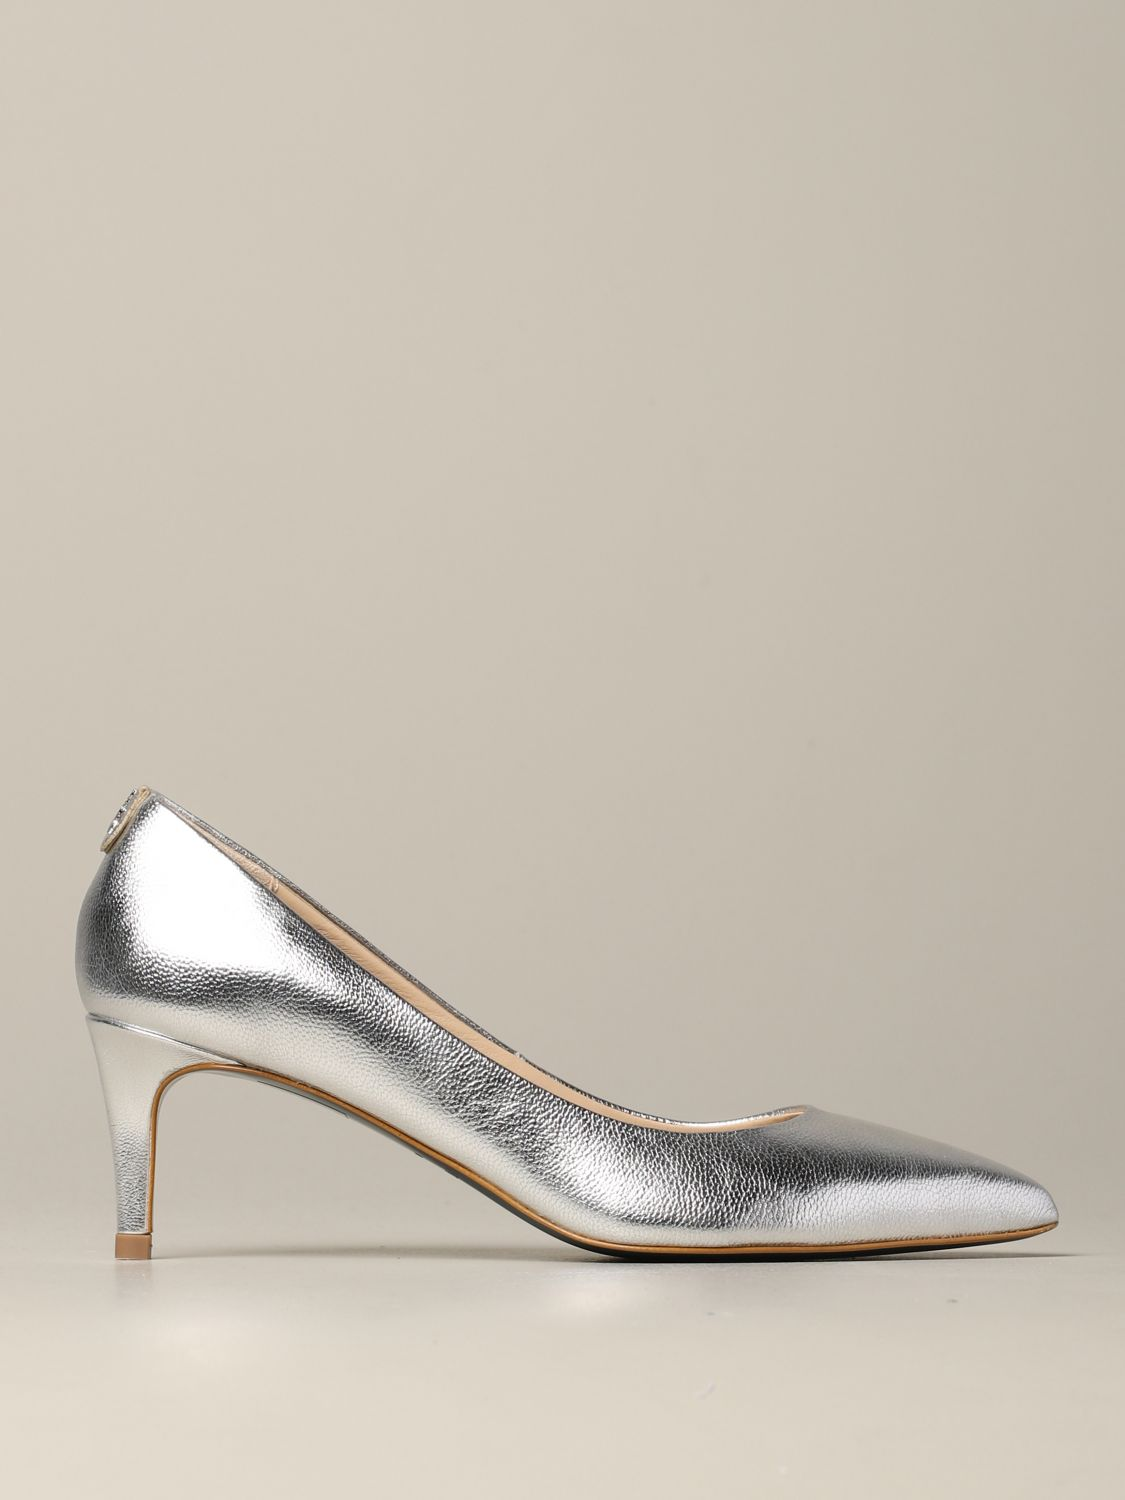 Patrizia Pepe pumps in laminated leather silver 1